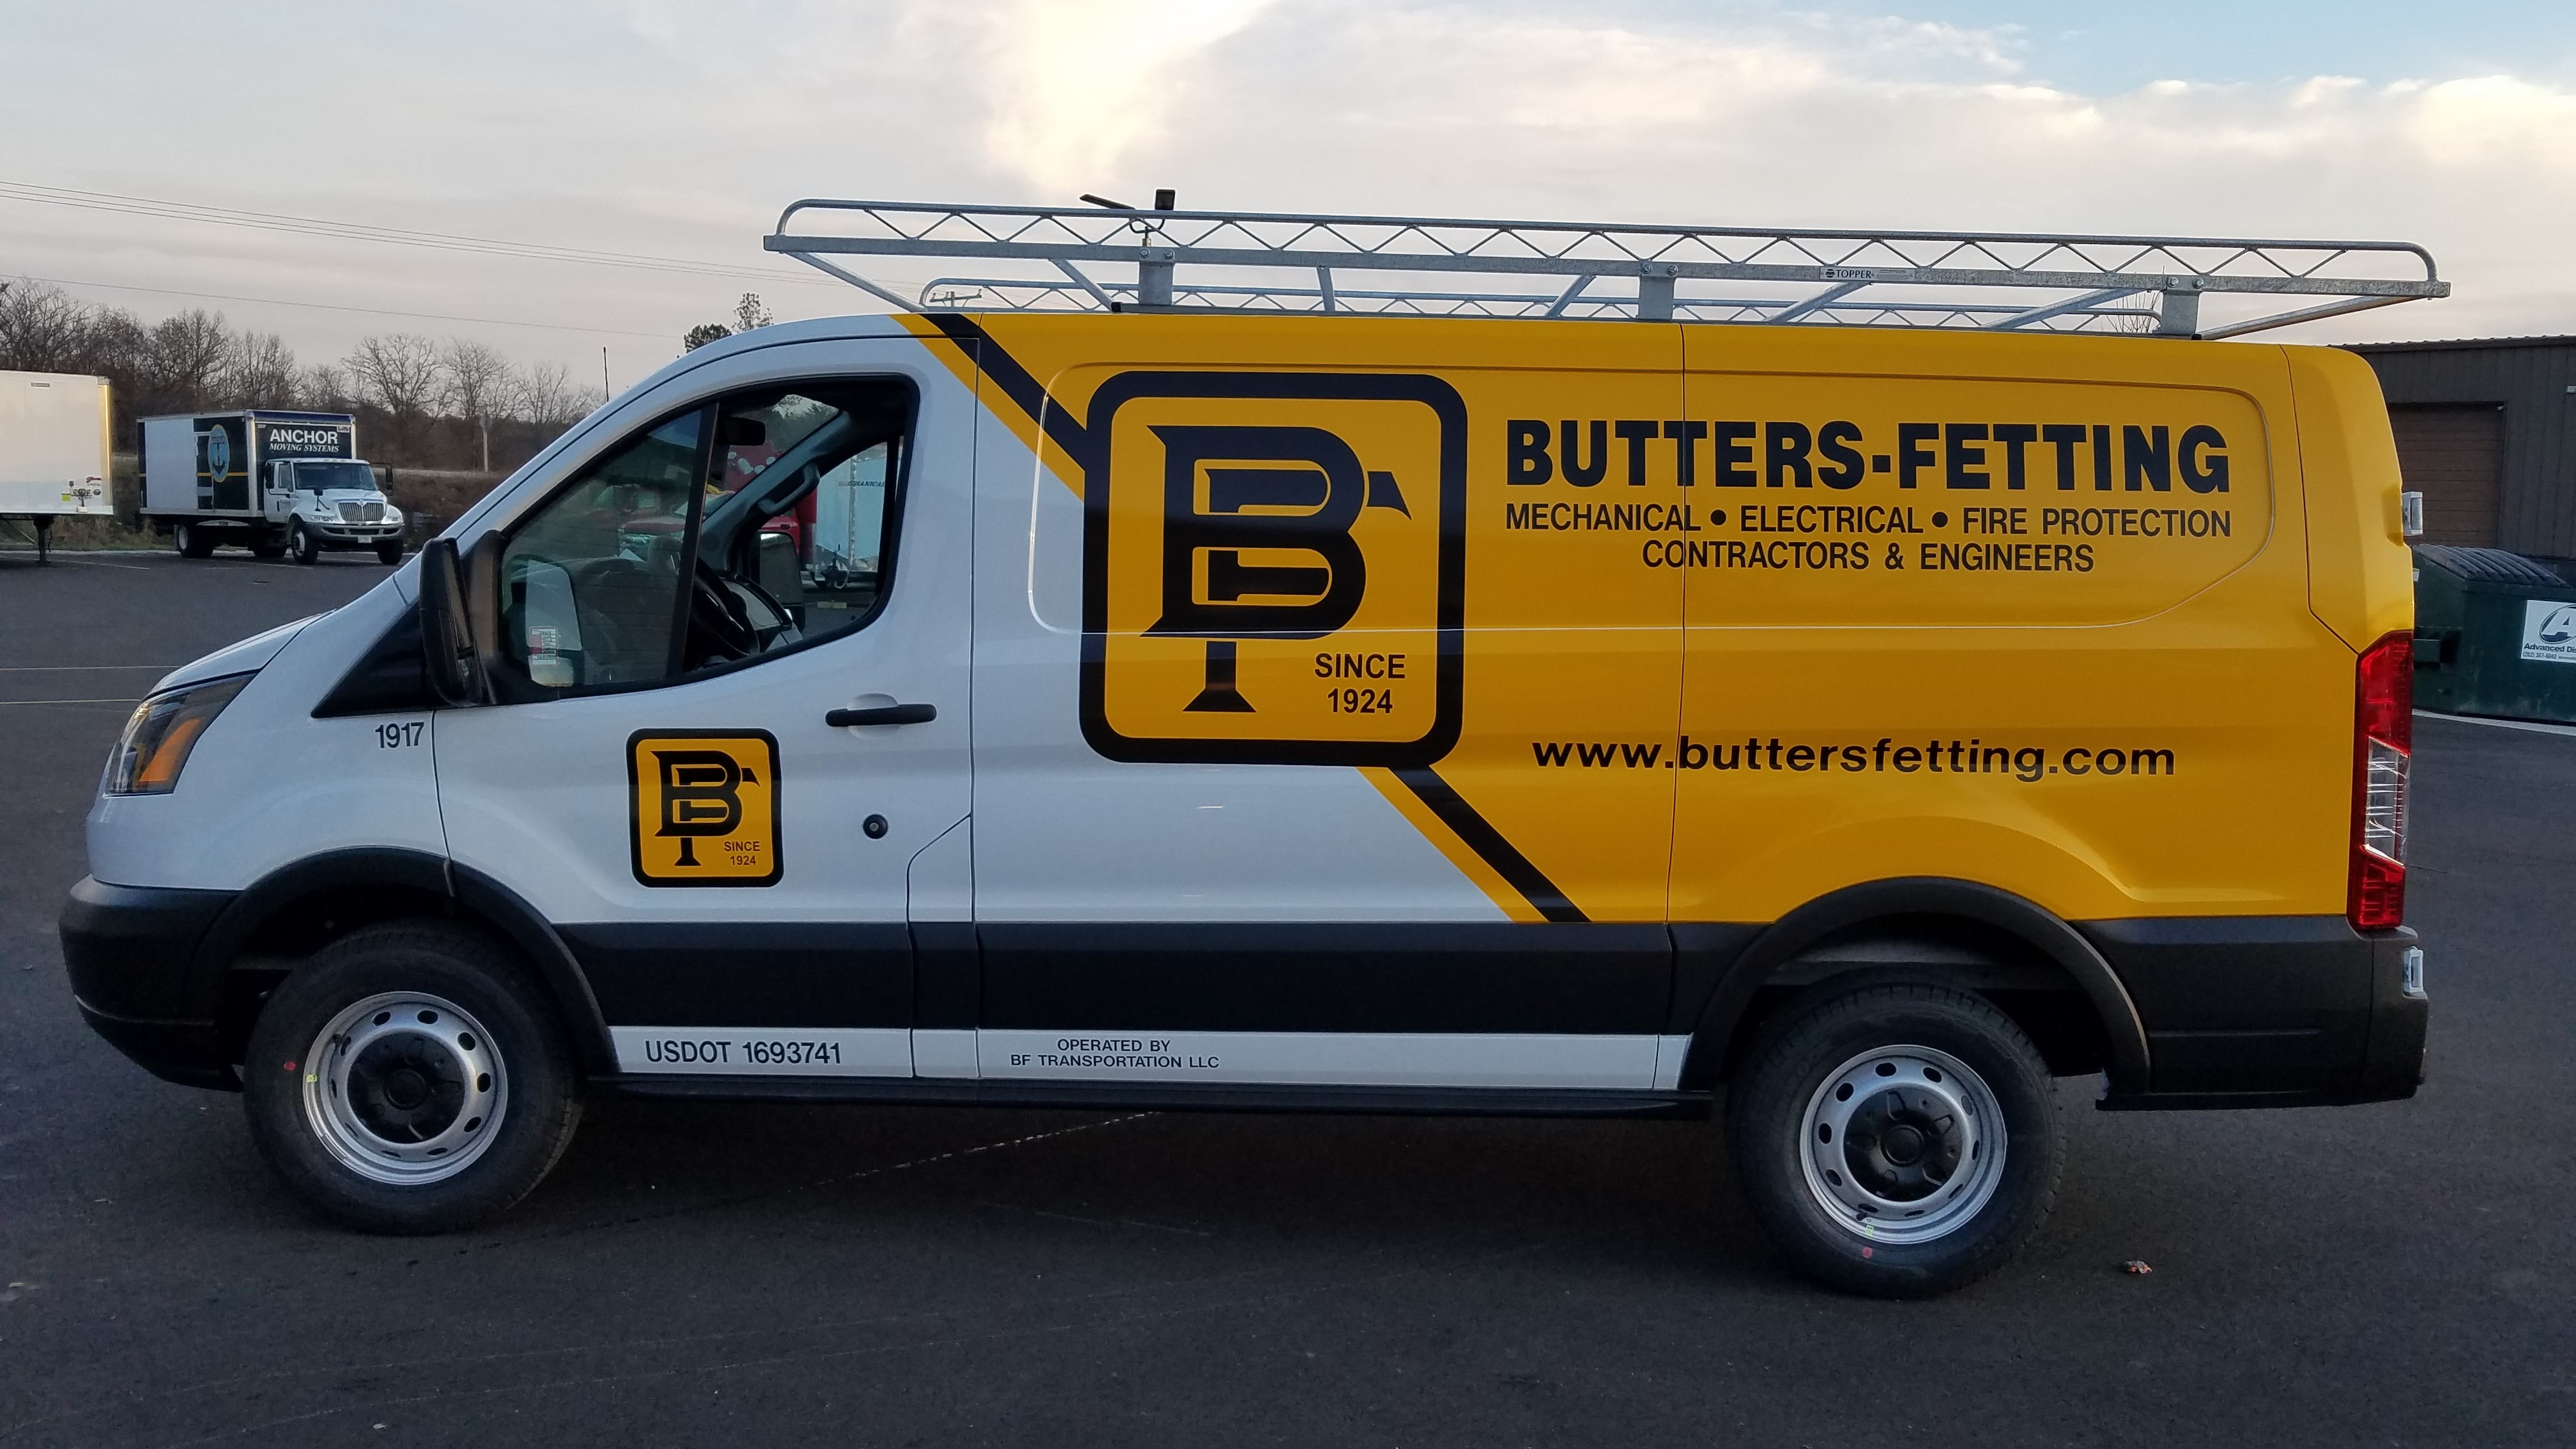 Butters Fetting work vinyl wrap designed and installed by Signs & Lines by Stretch